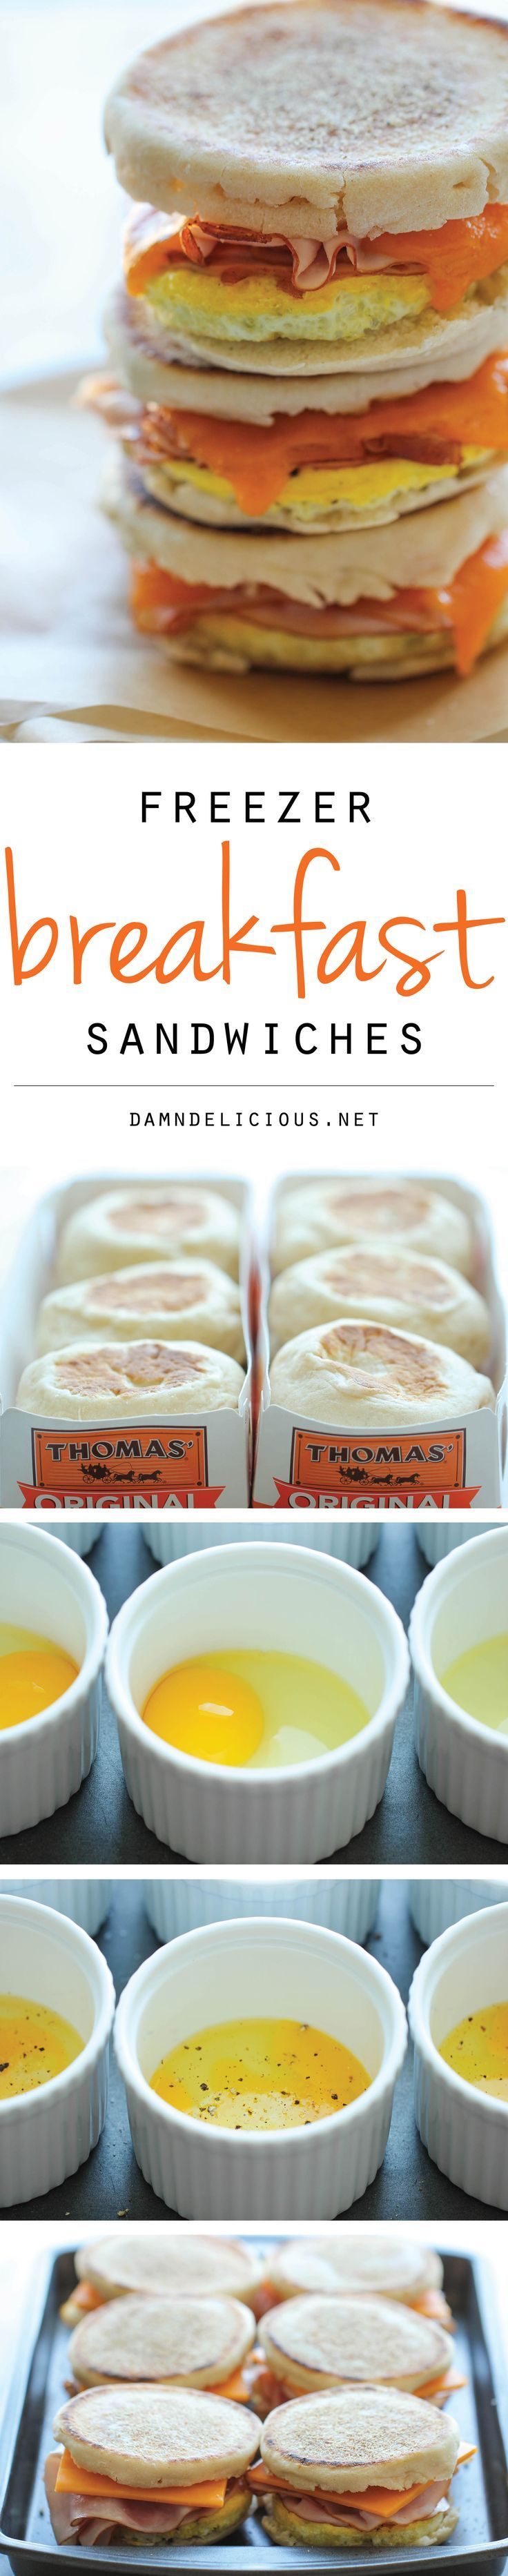 Freezer Breakfast Sandwiches ~ easy, make-ahead freezer-friendly sandwiches, perfect for breakfast-on-the-go | damndelicious.com